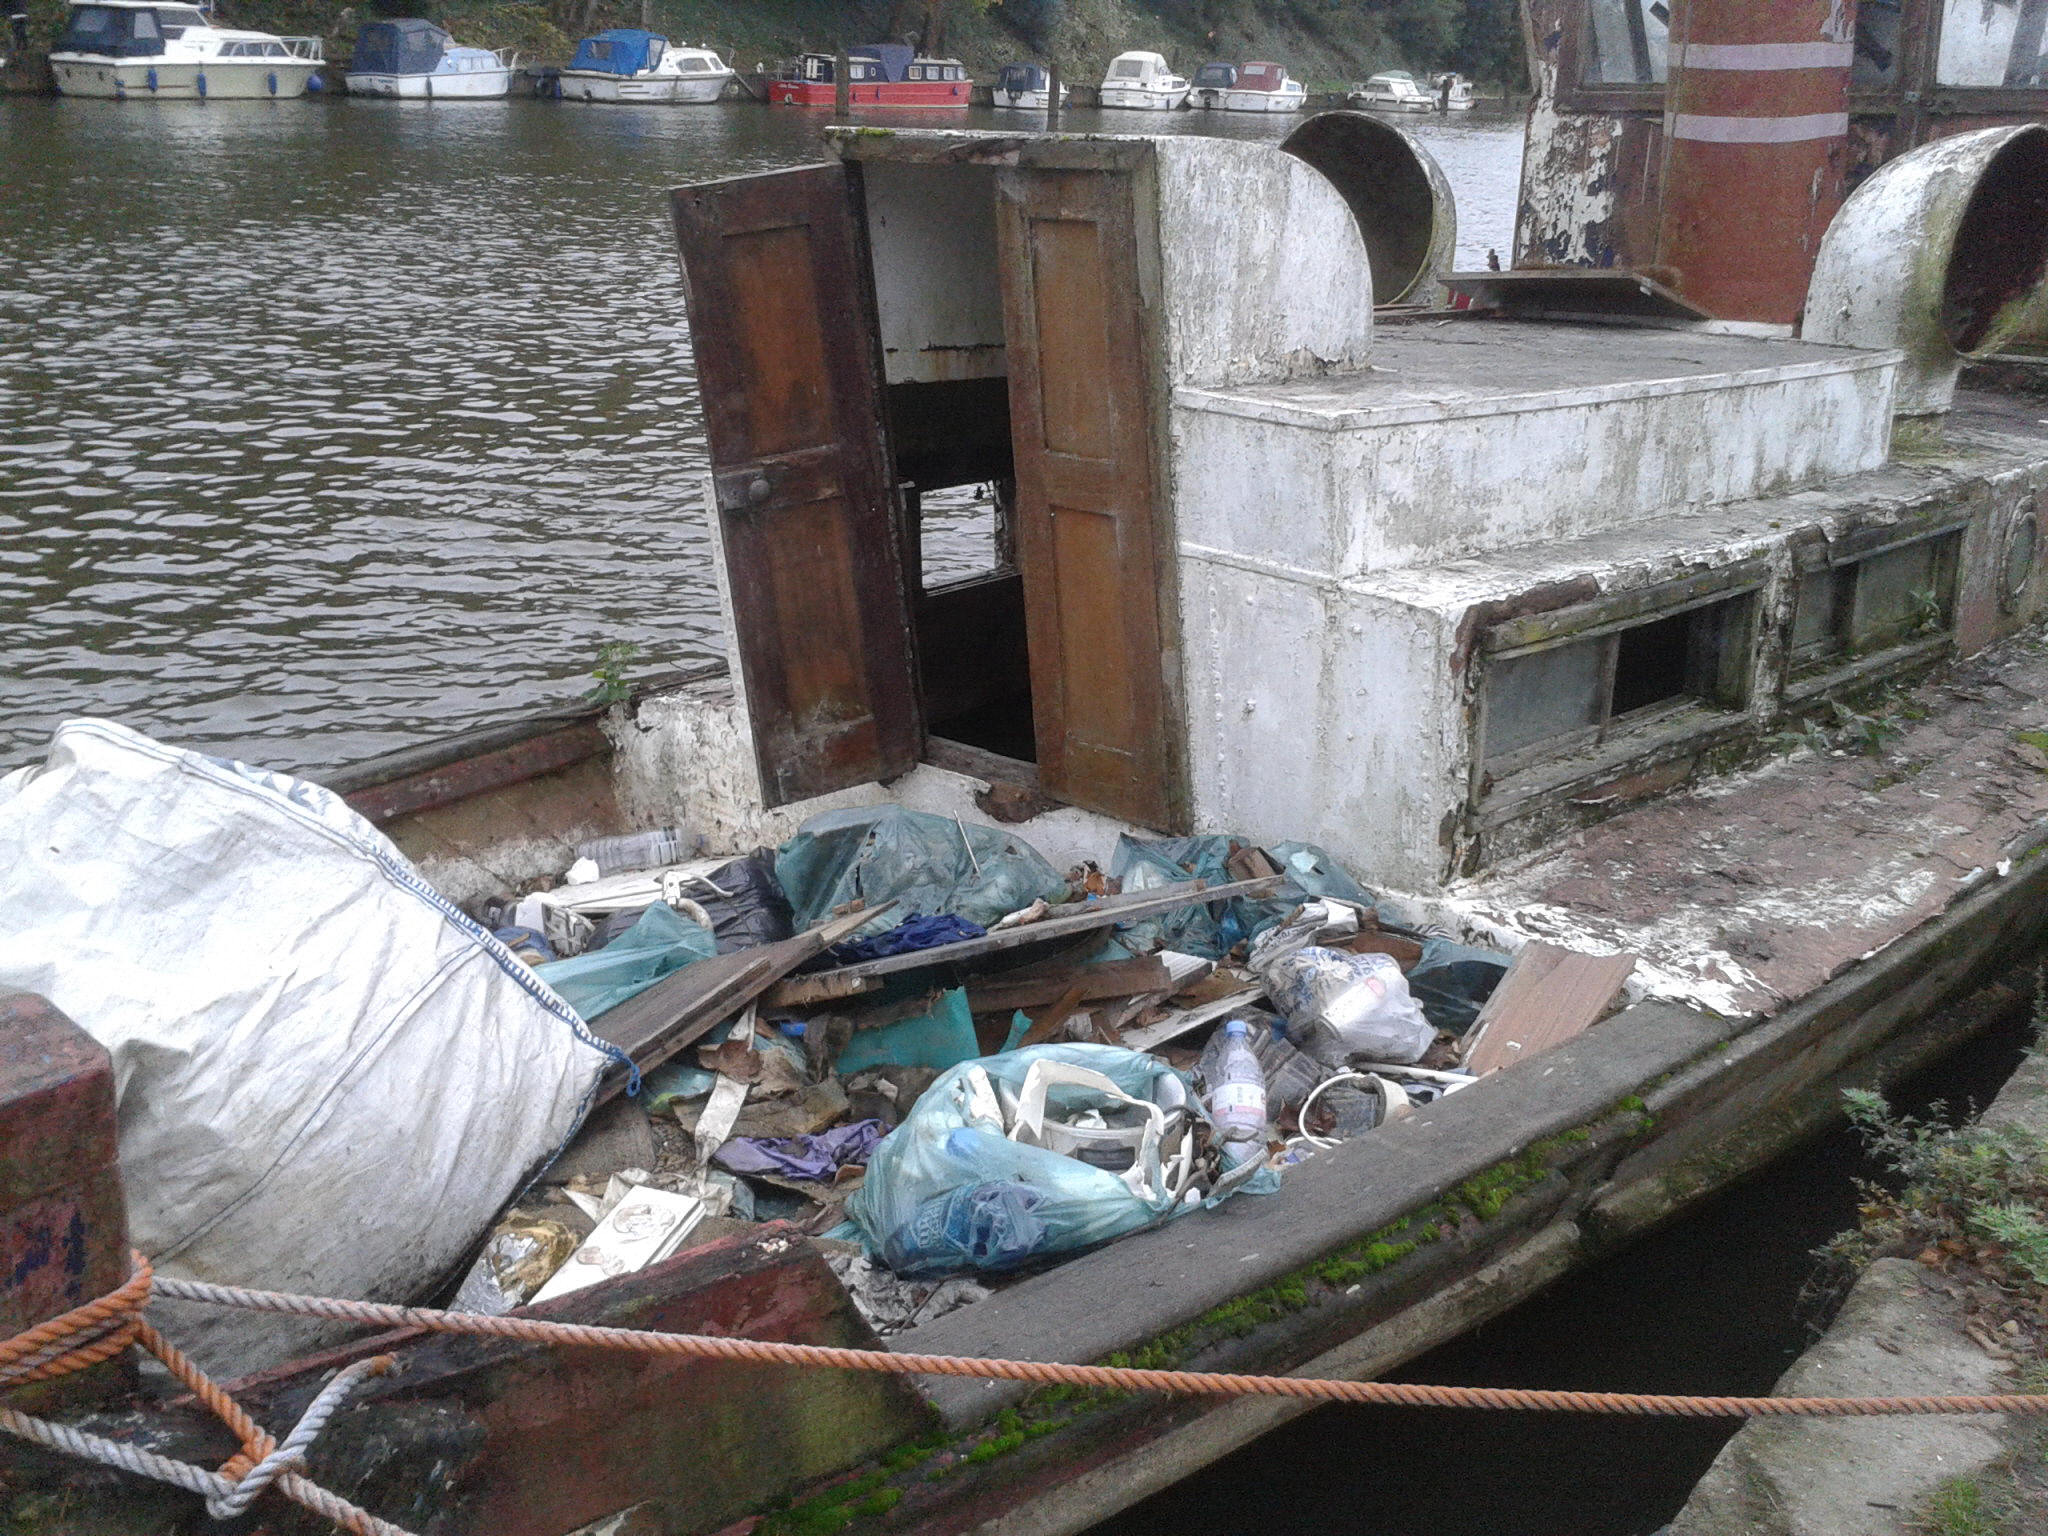 Sad sight: In a very sad state — the boat appears to have been used as a dumping ground.